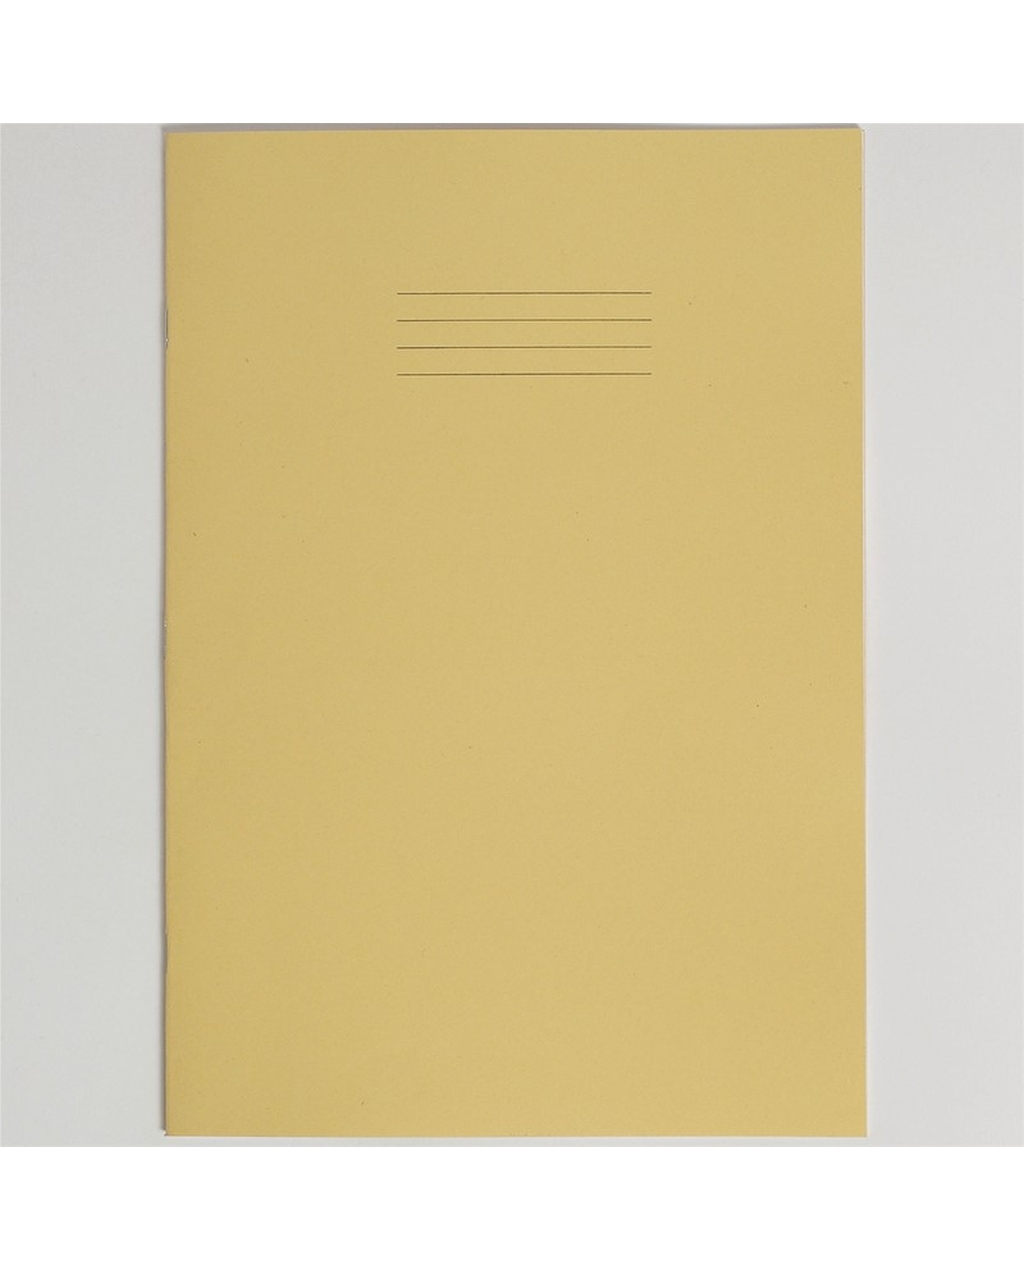 Exercise Book A4+ size (330 x 250mm) Yellow Cover 7mm Squares 40 Pages